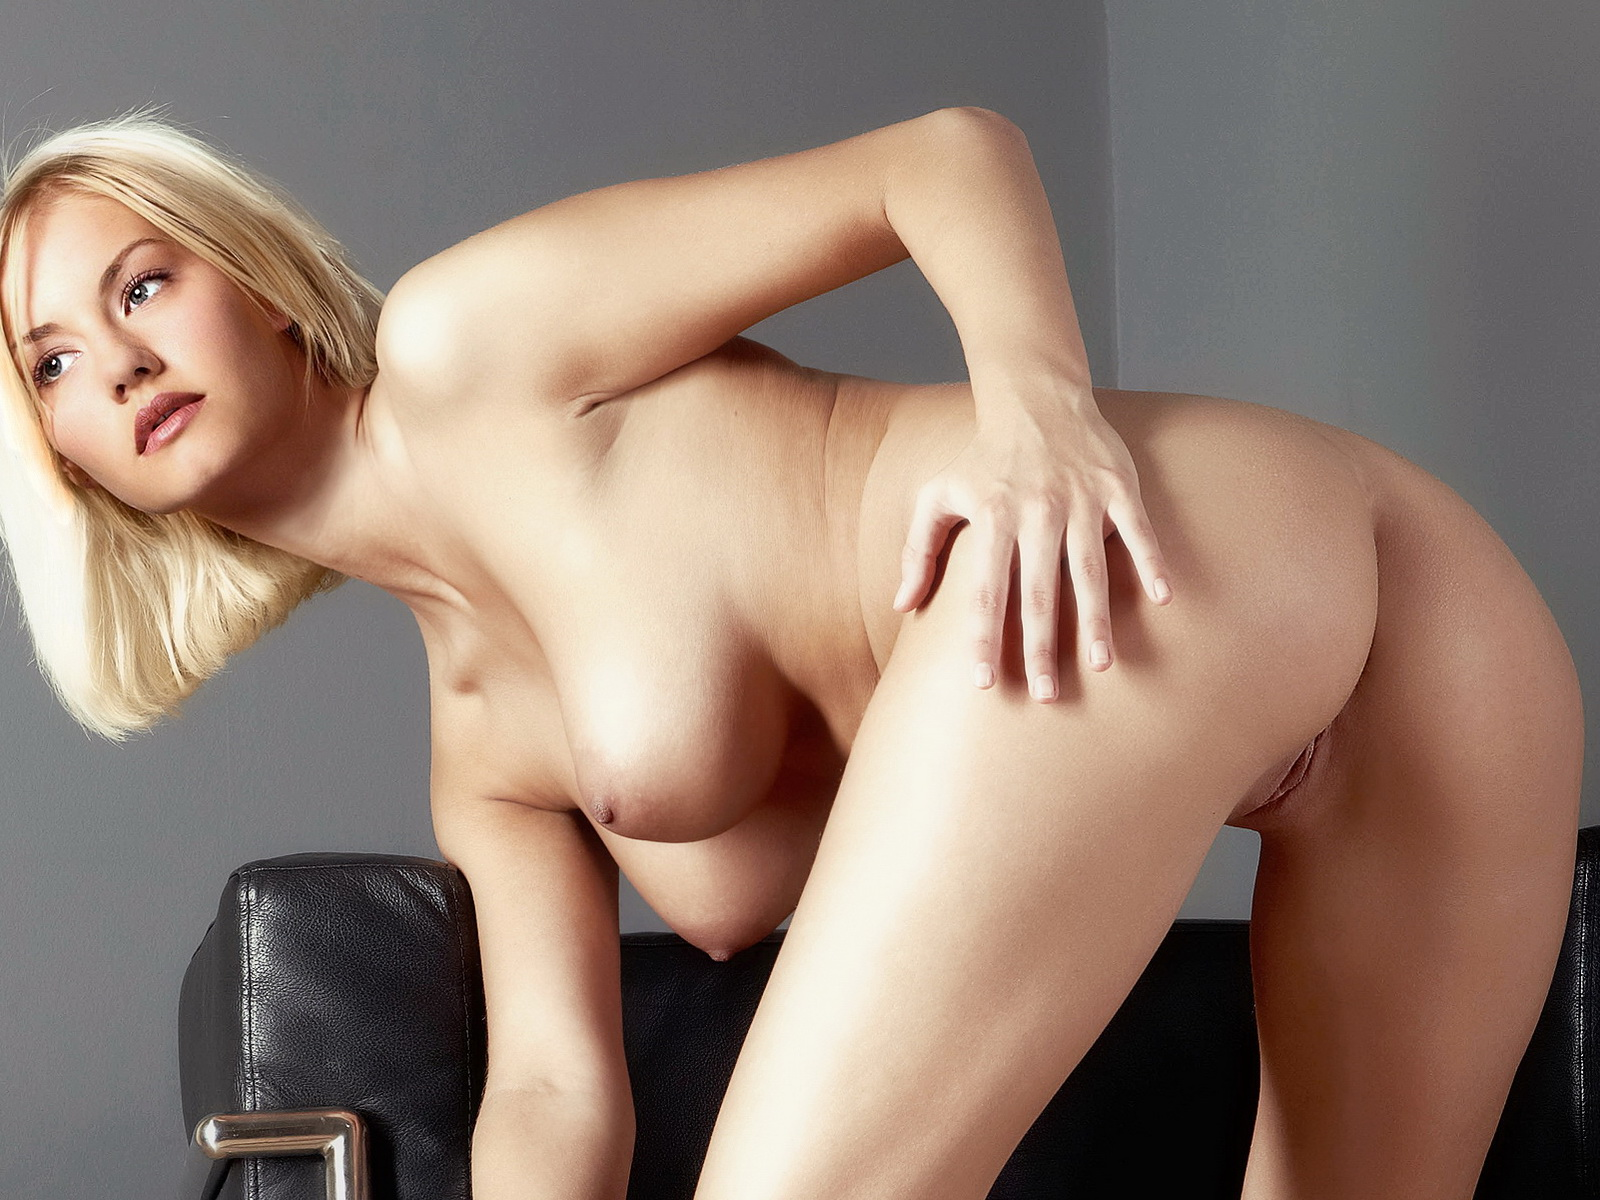 Elisha Cuthbert Nude Photos Naked Sex Pics